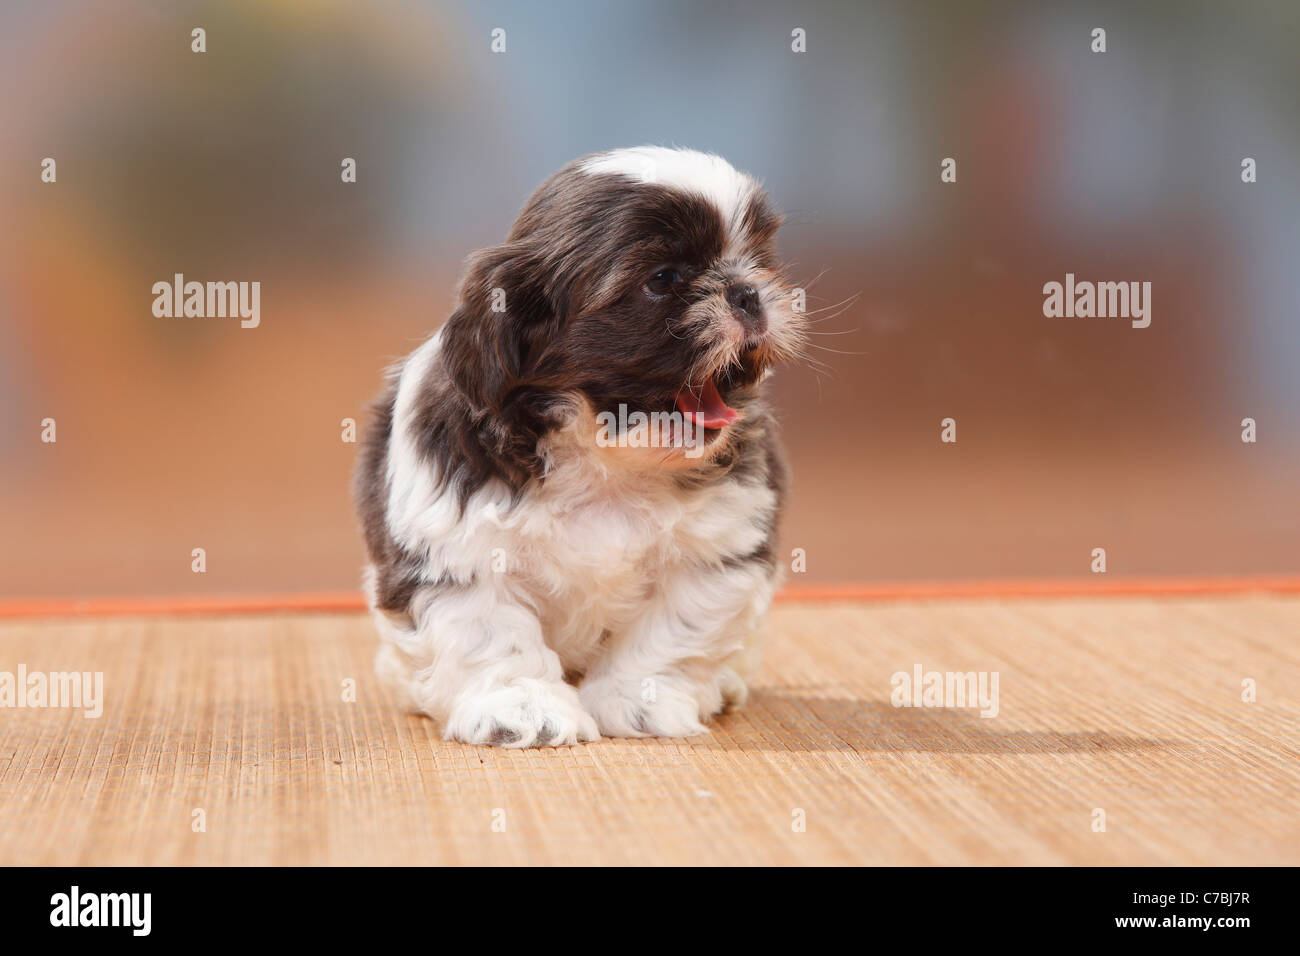 Shih Tzu Puppy 6 Weeks Stock Photo 38979131 Alamy